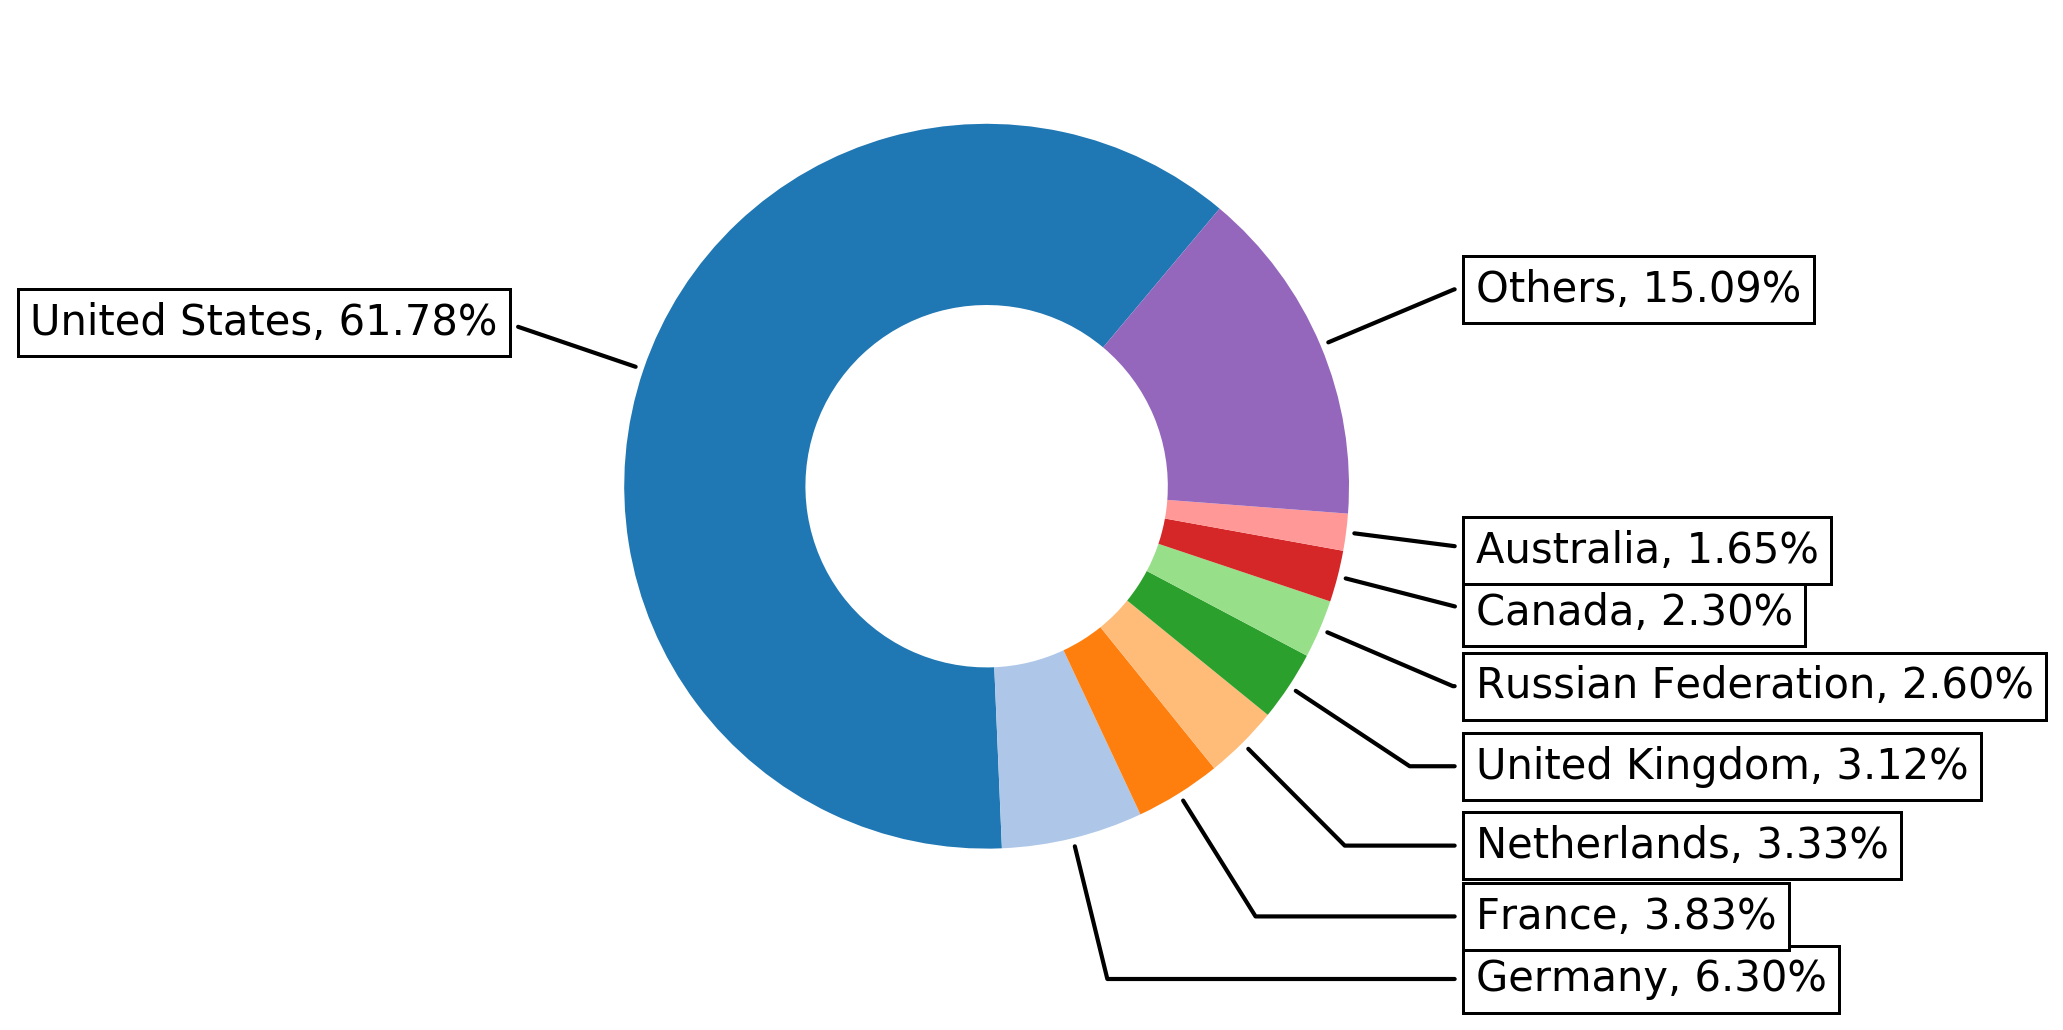 The top eight countries we identified as being the geographical locations of the largest number of domains compromised by web skimmer malware are: United States, Germany, France, Netherlands, United Kingdom, Russian Federation, Canada and Australia.